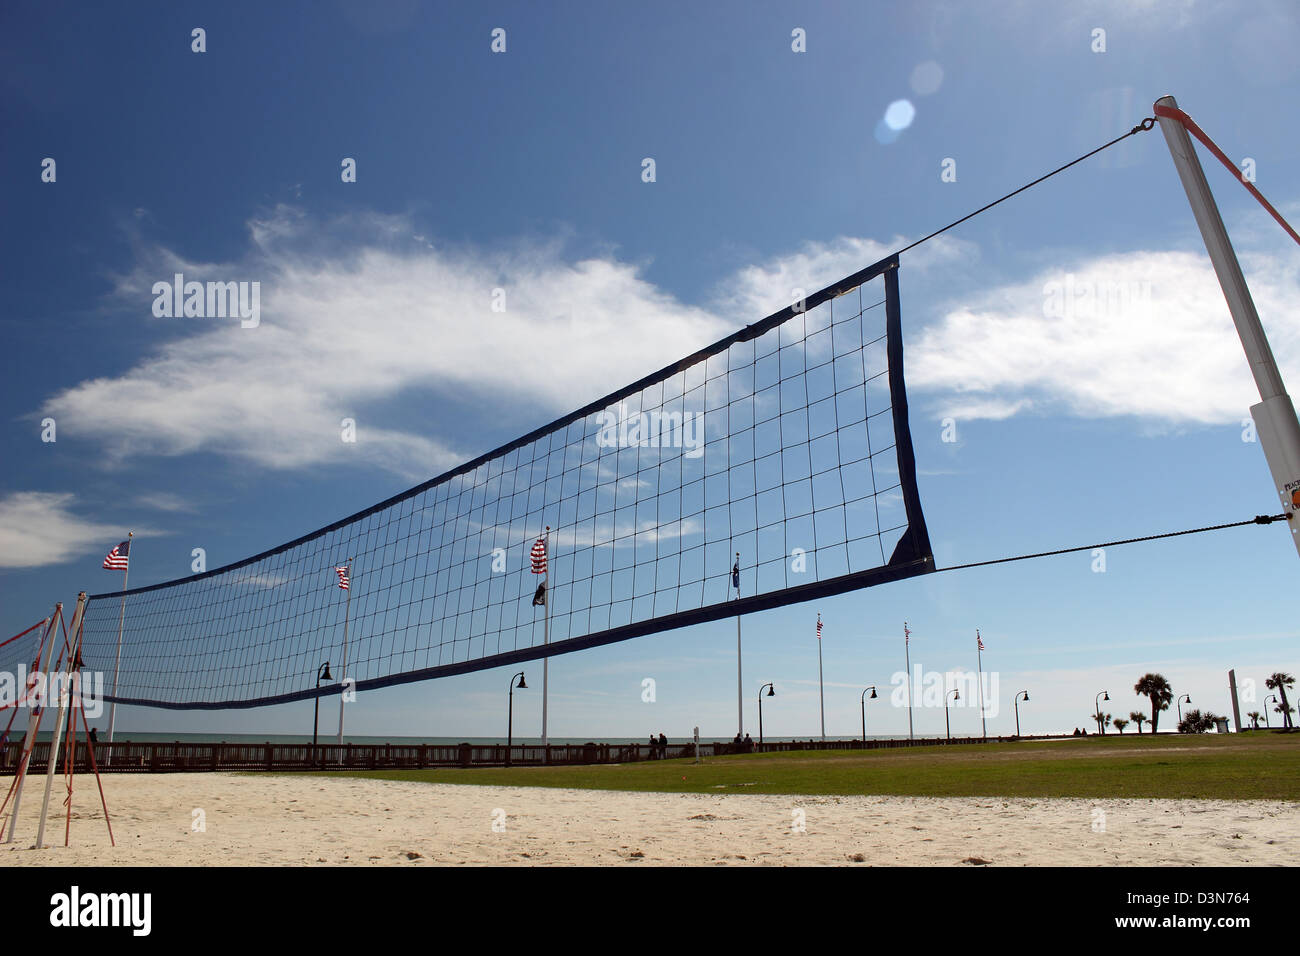 sand court stock photos u0026 sand court stock images alamy